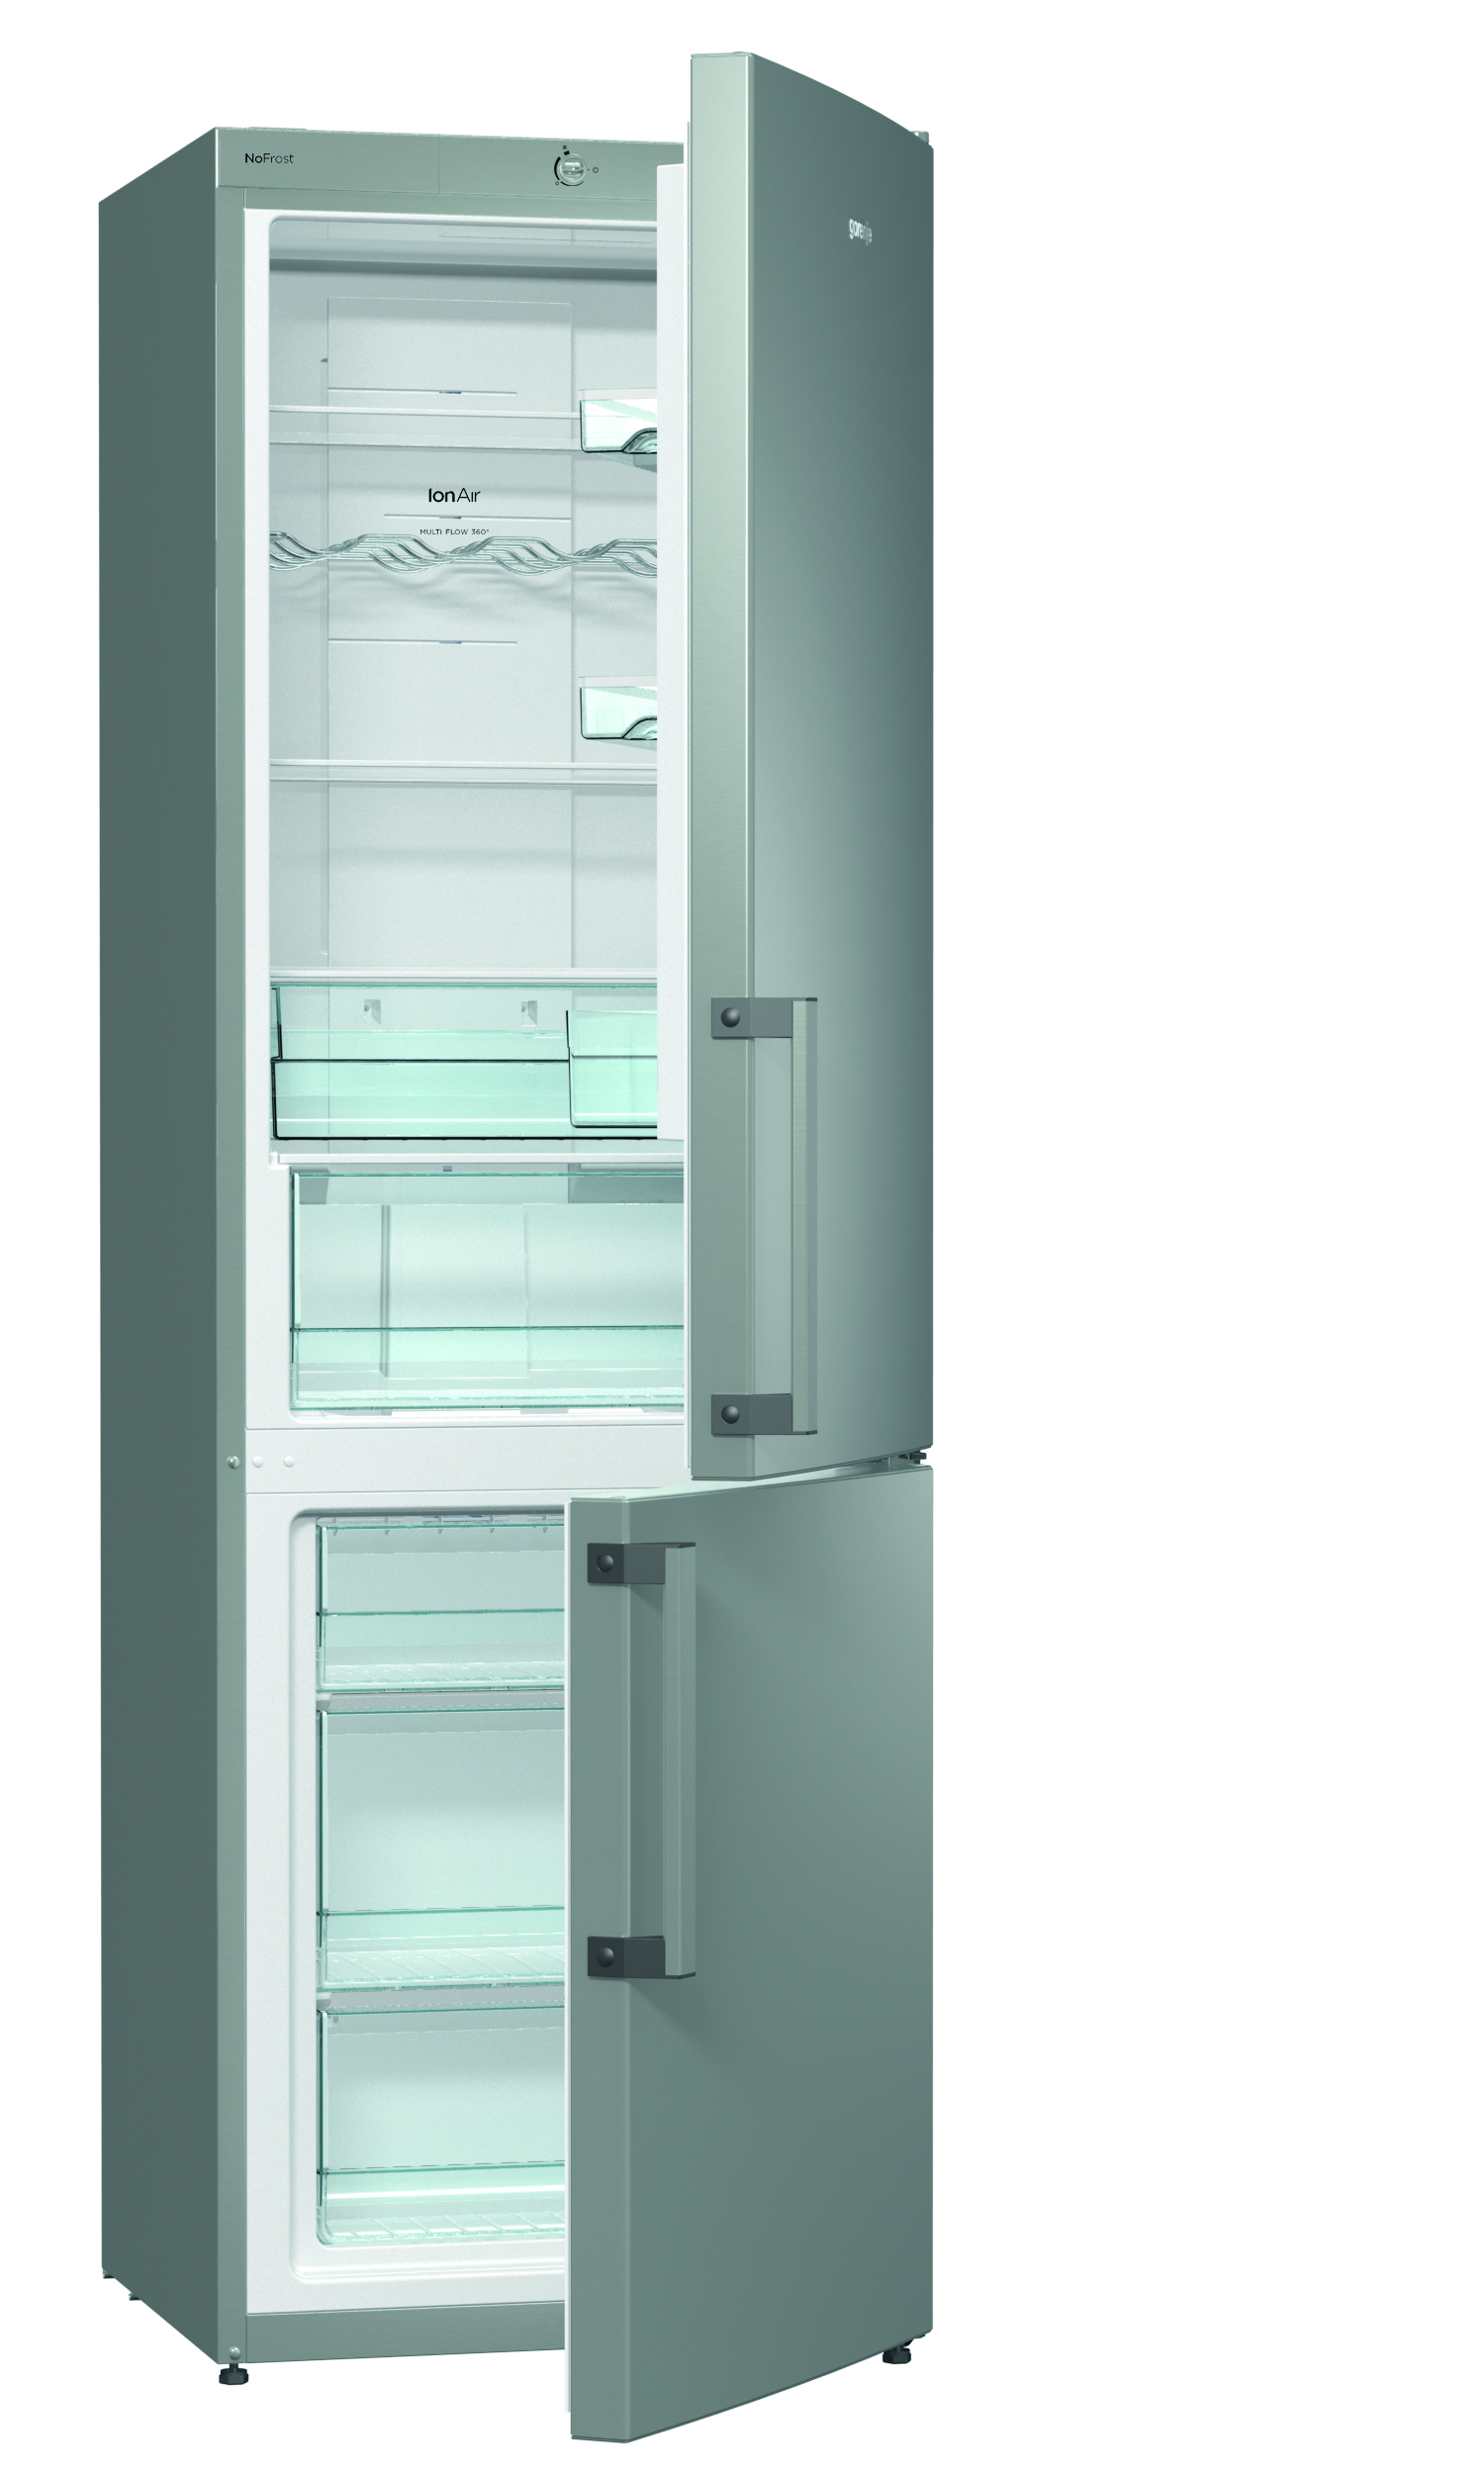 Tall fridge and freezer set